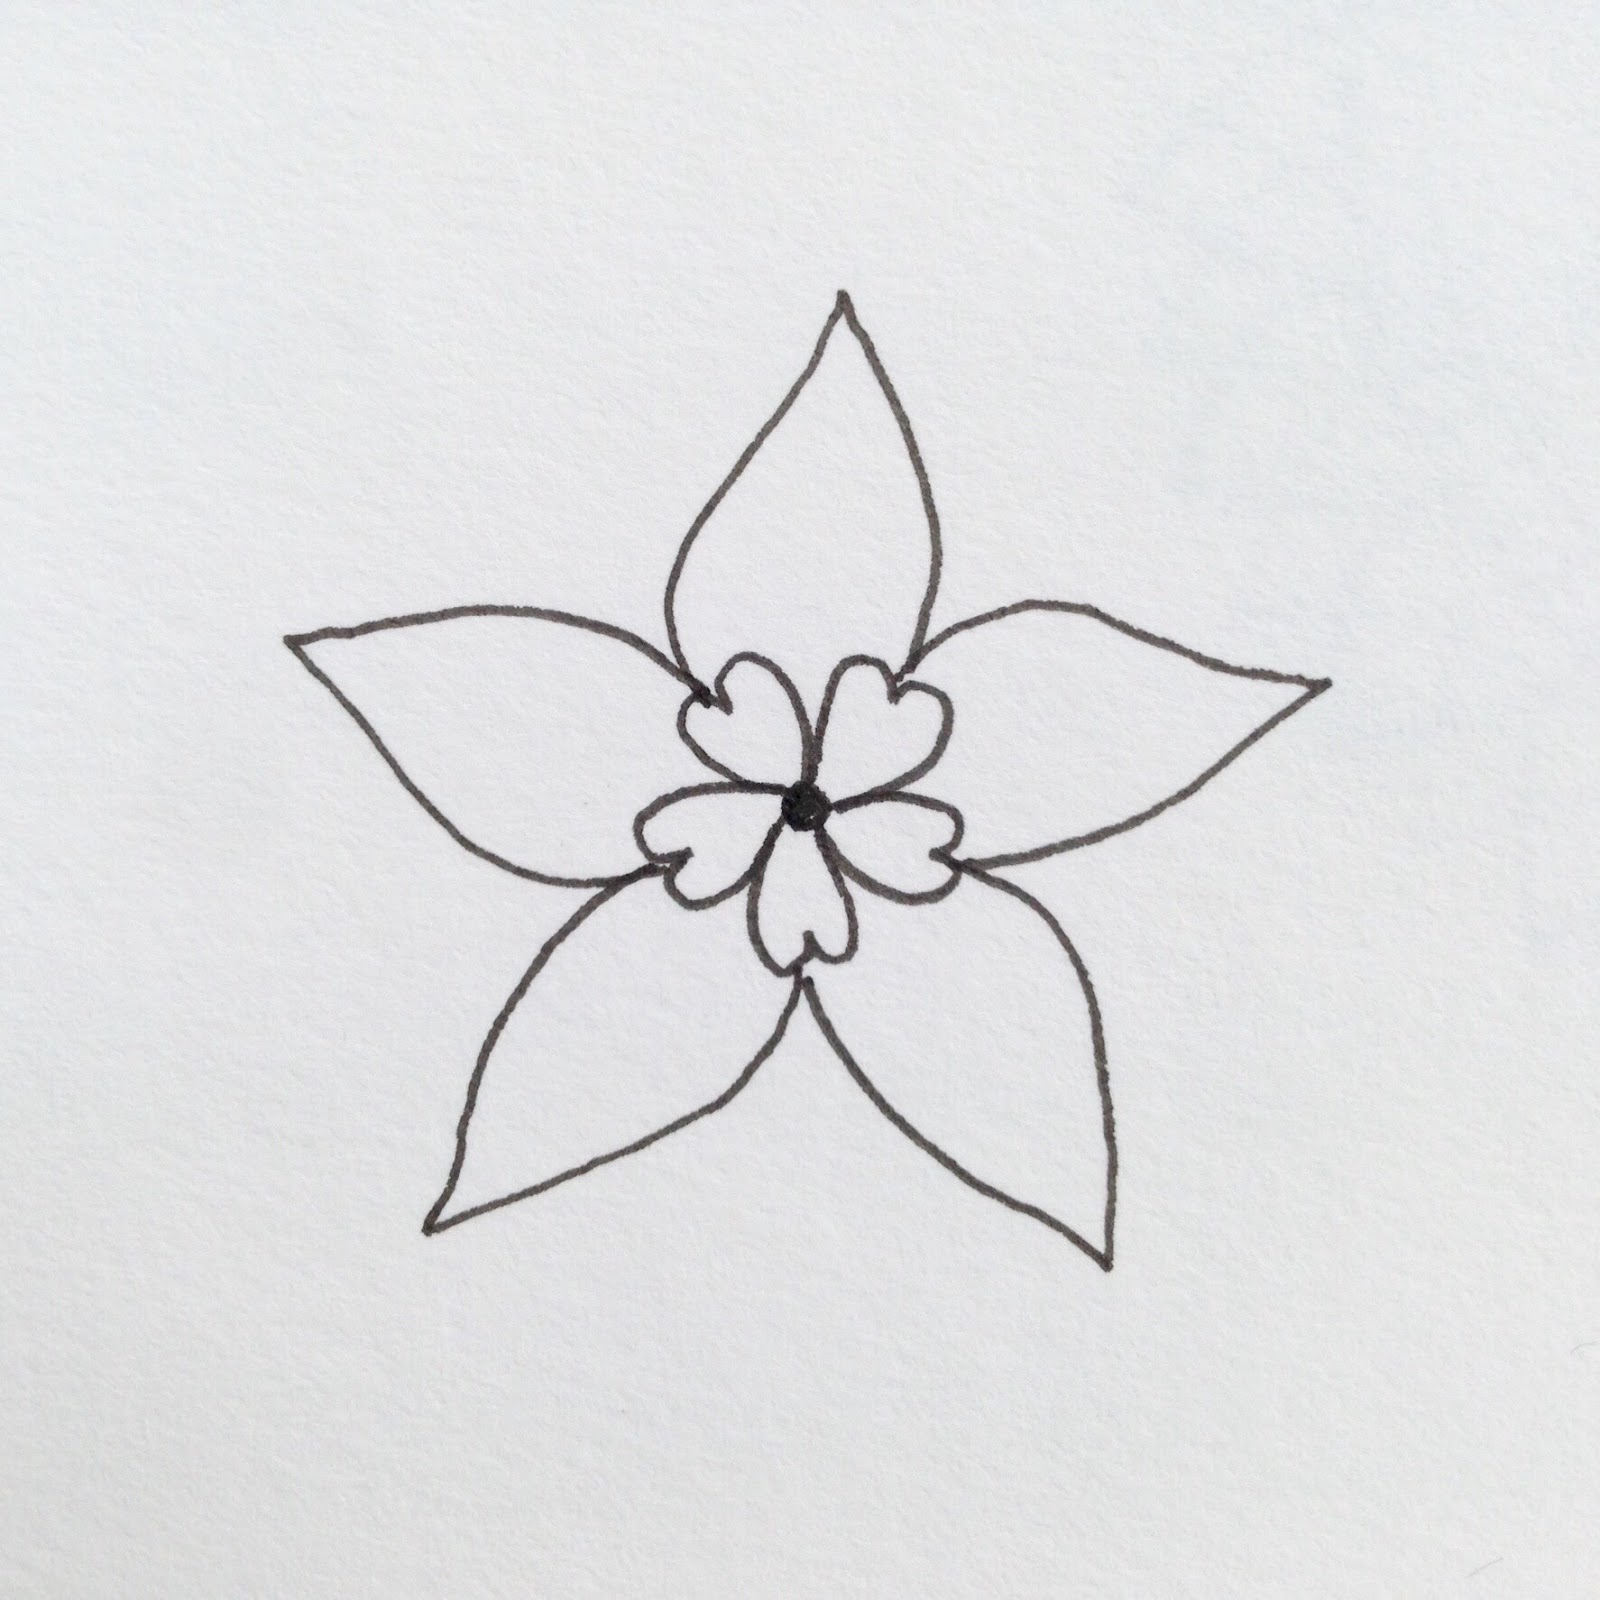 how to draw petals on a flower